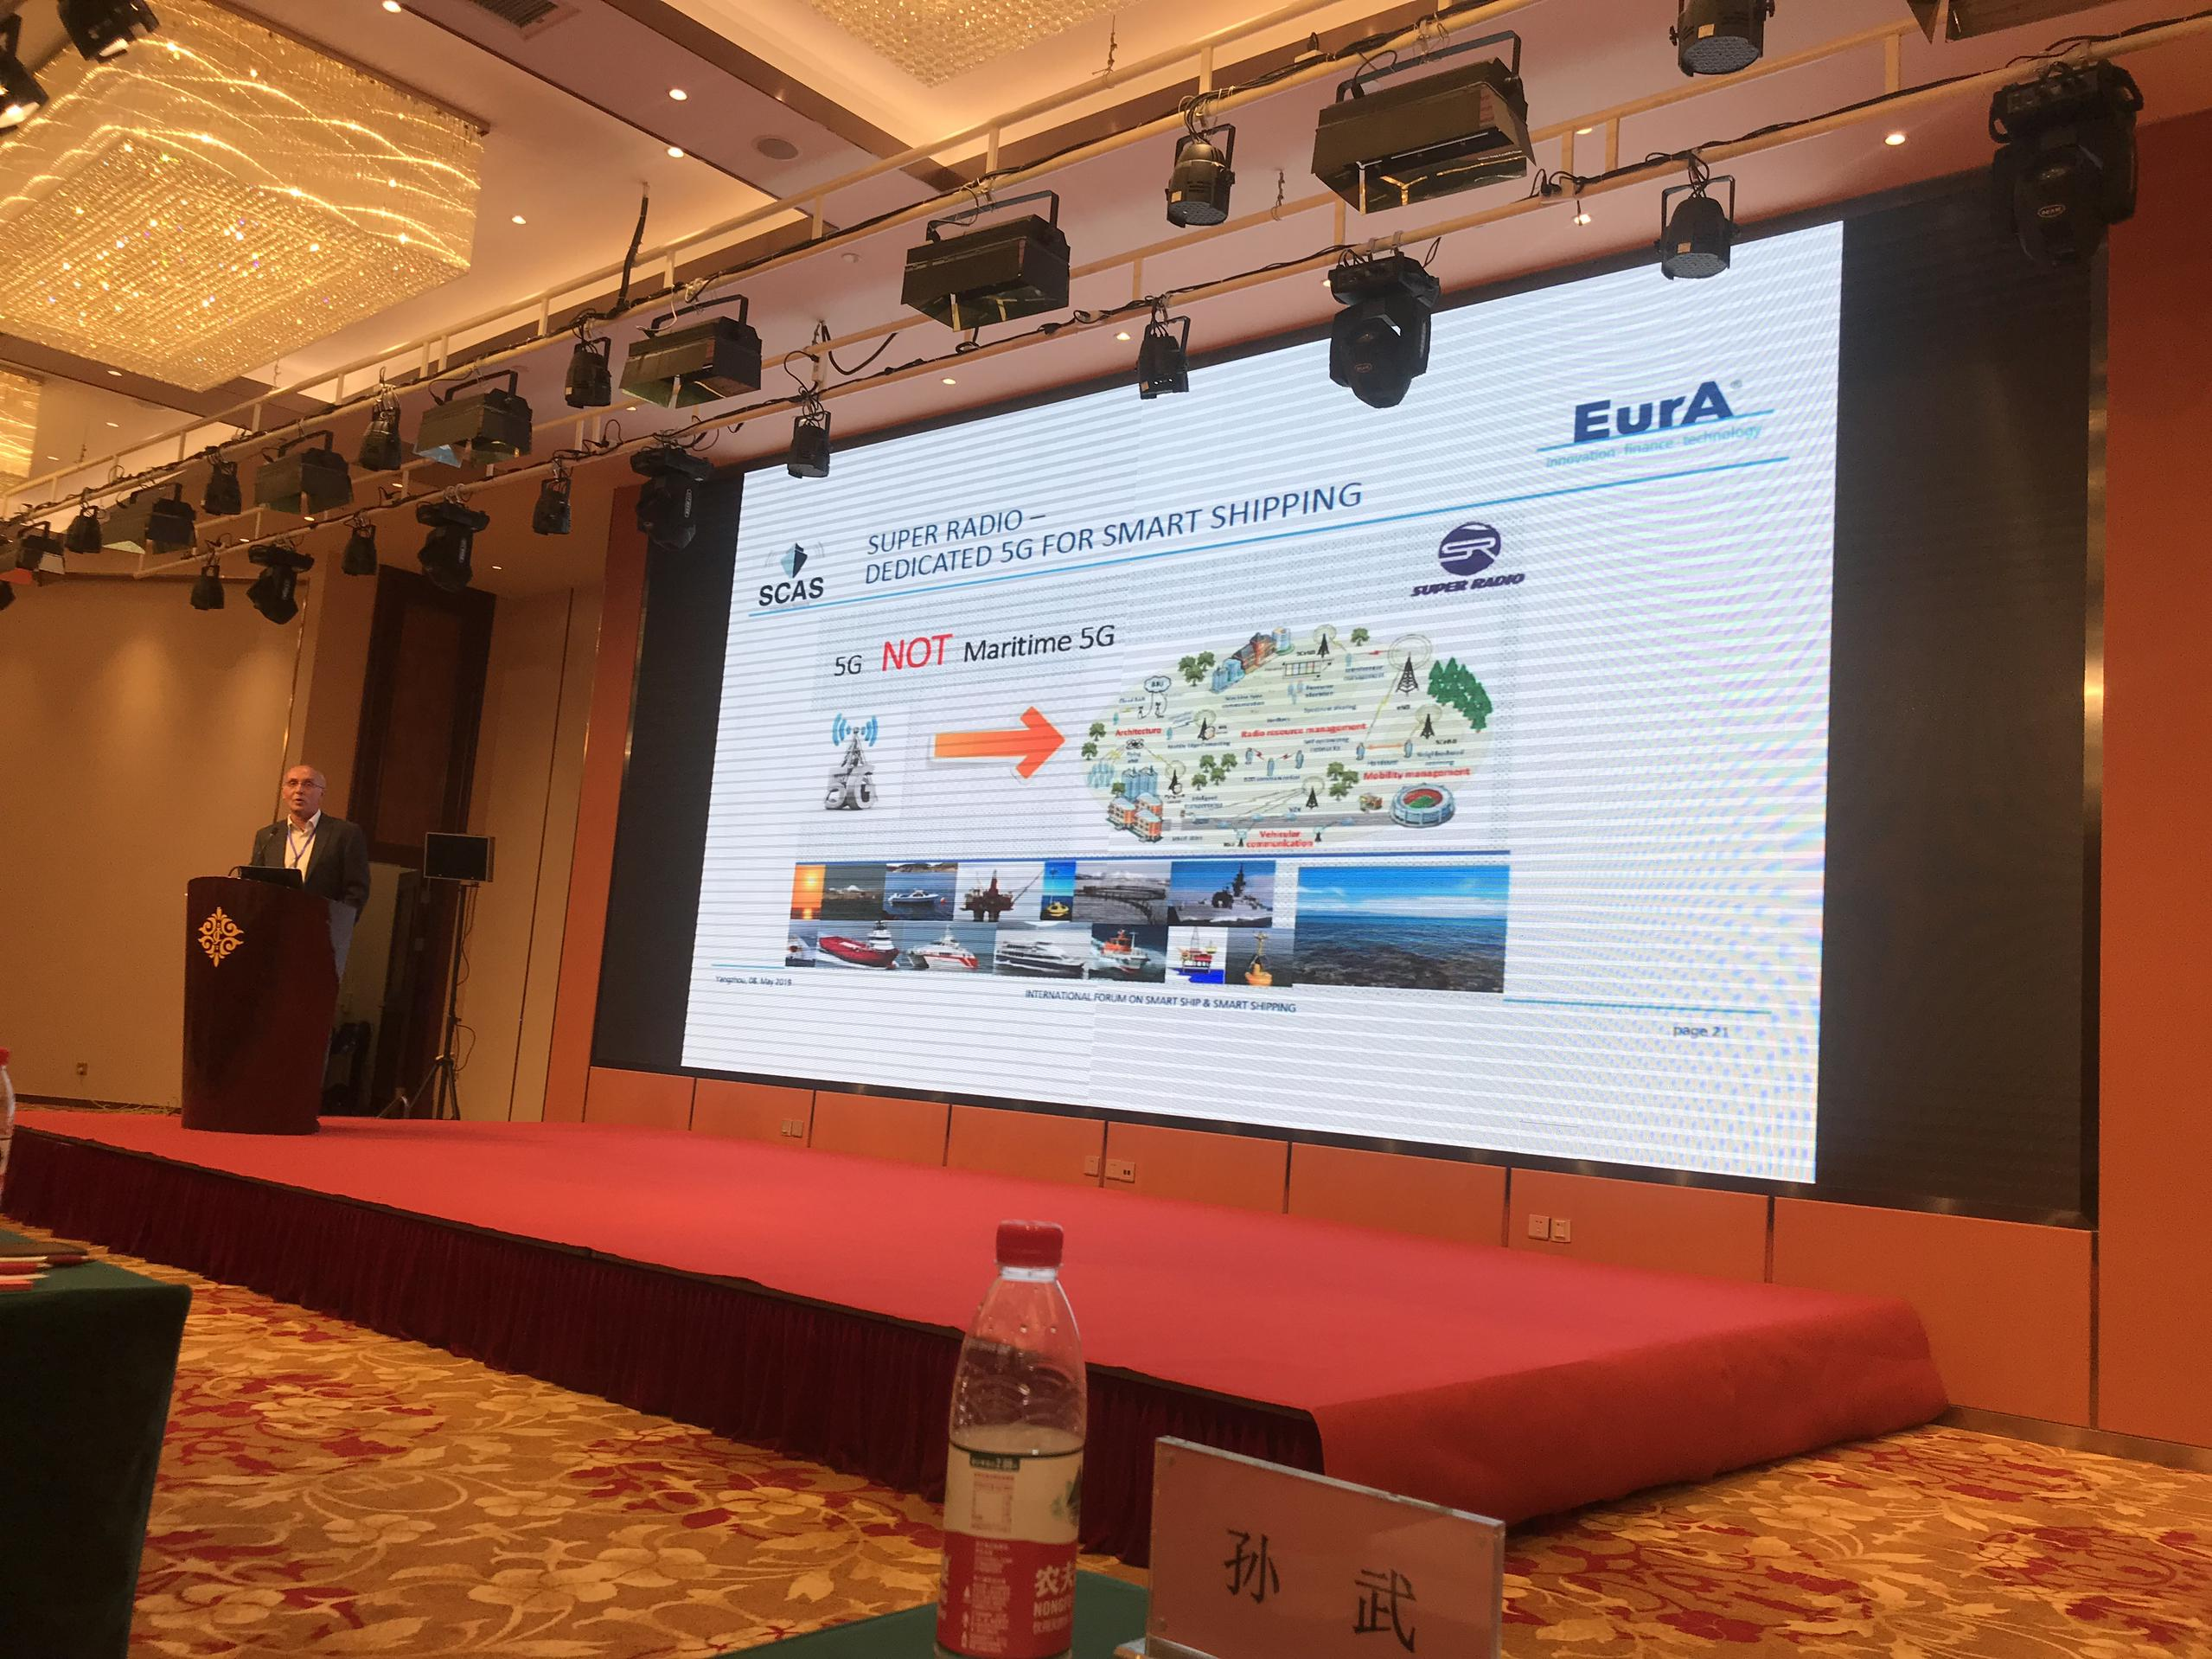 Presentation in International Forum on Smart Shipping